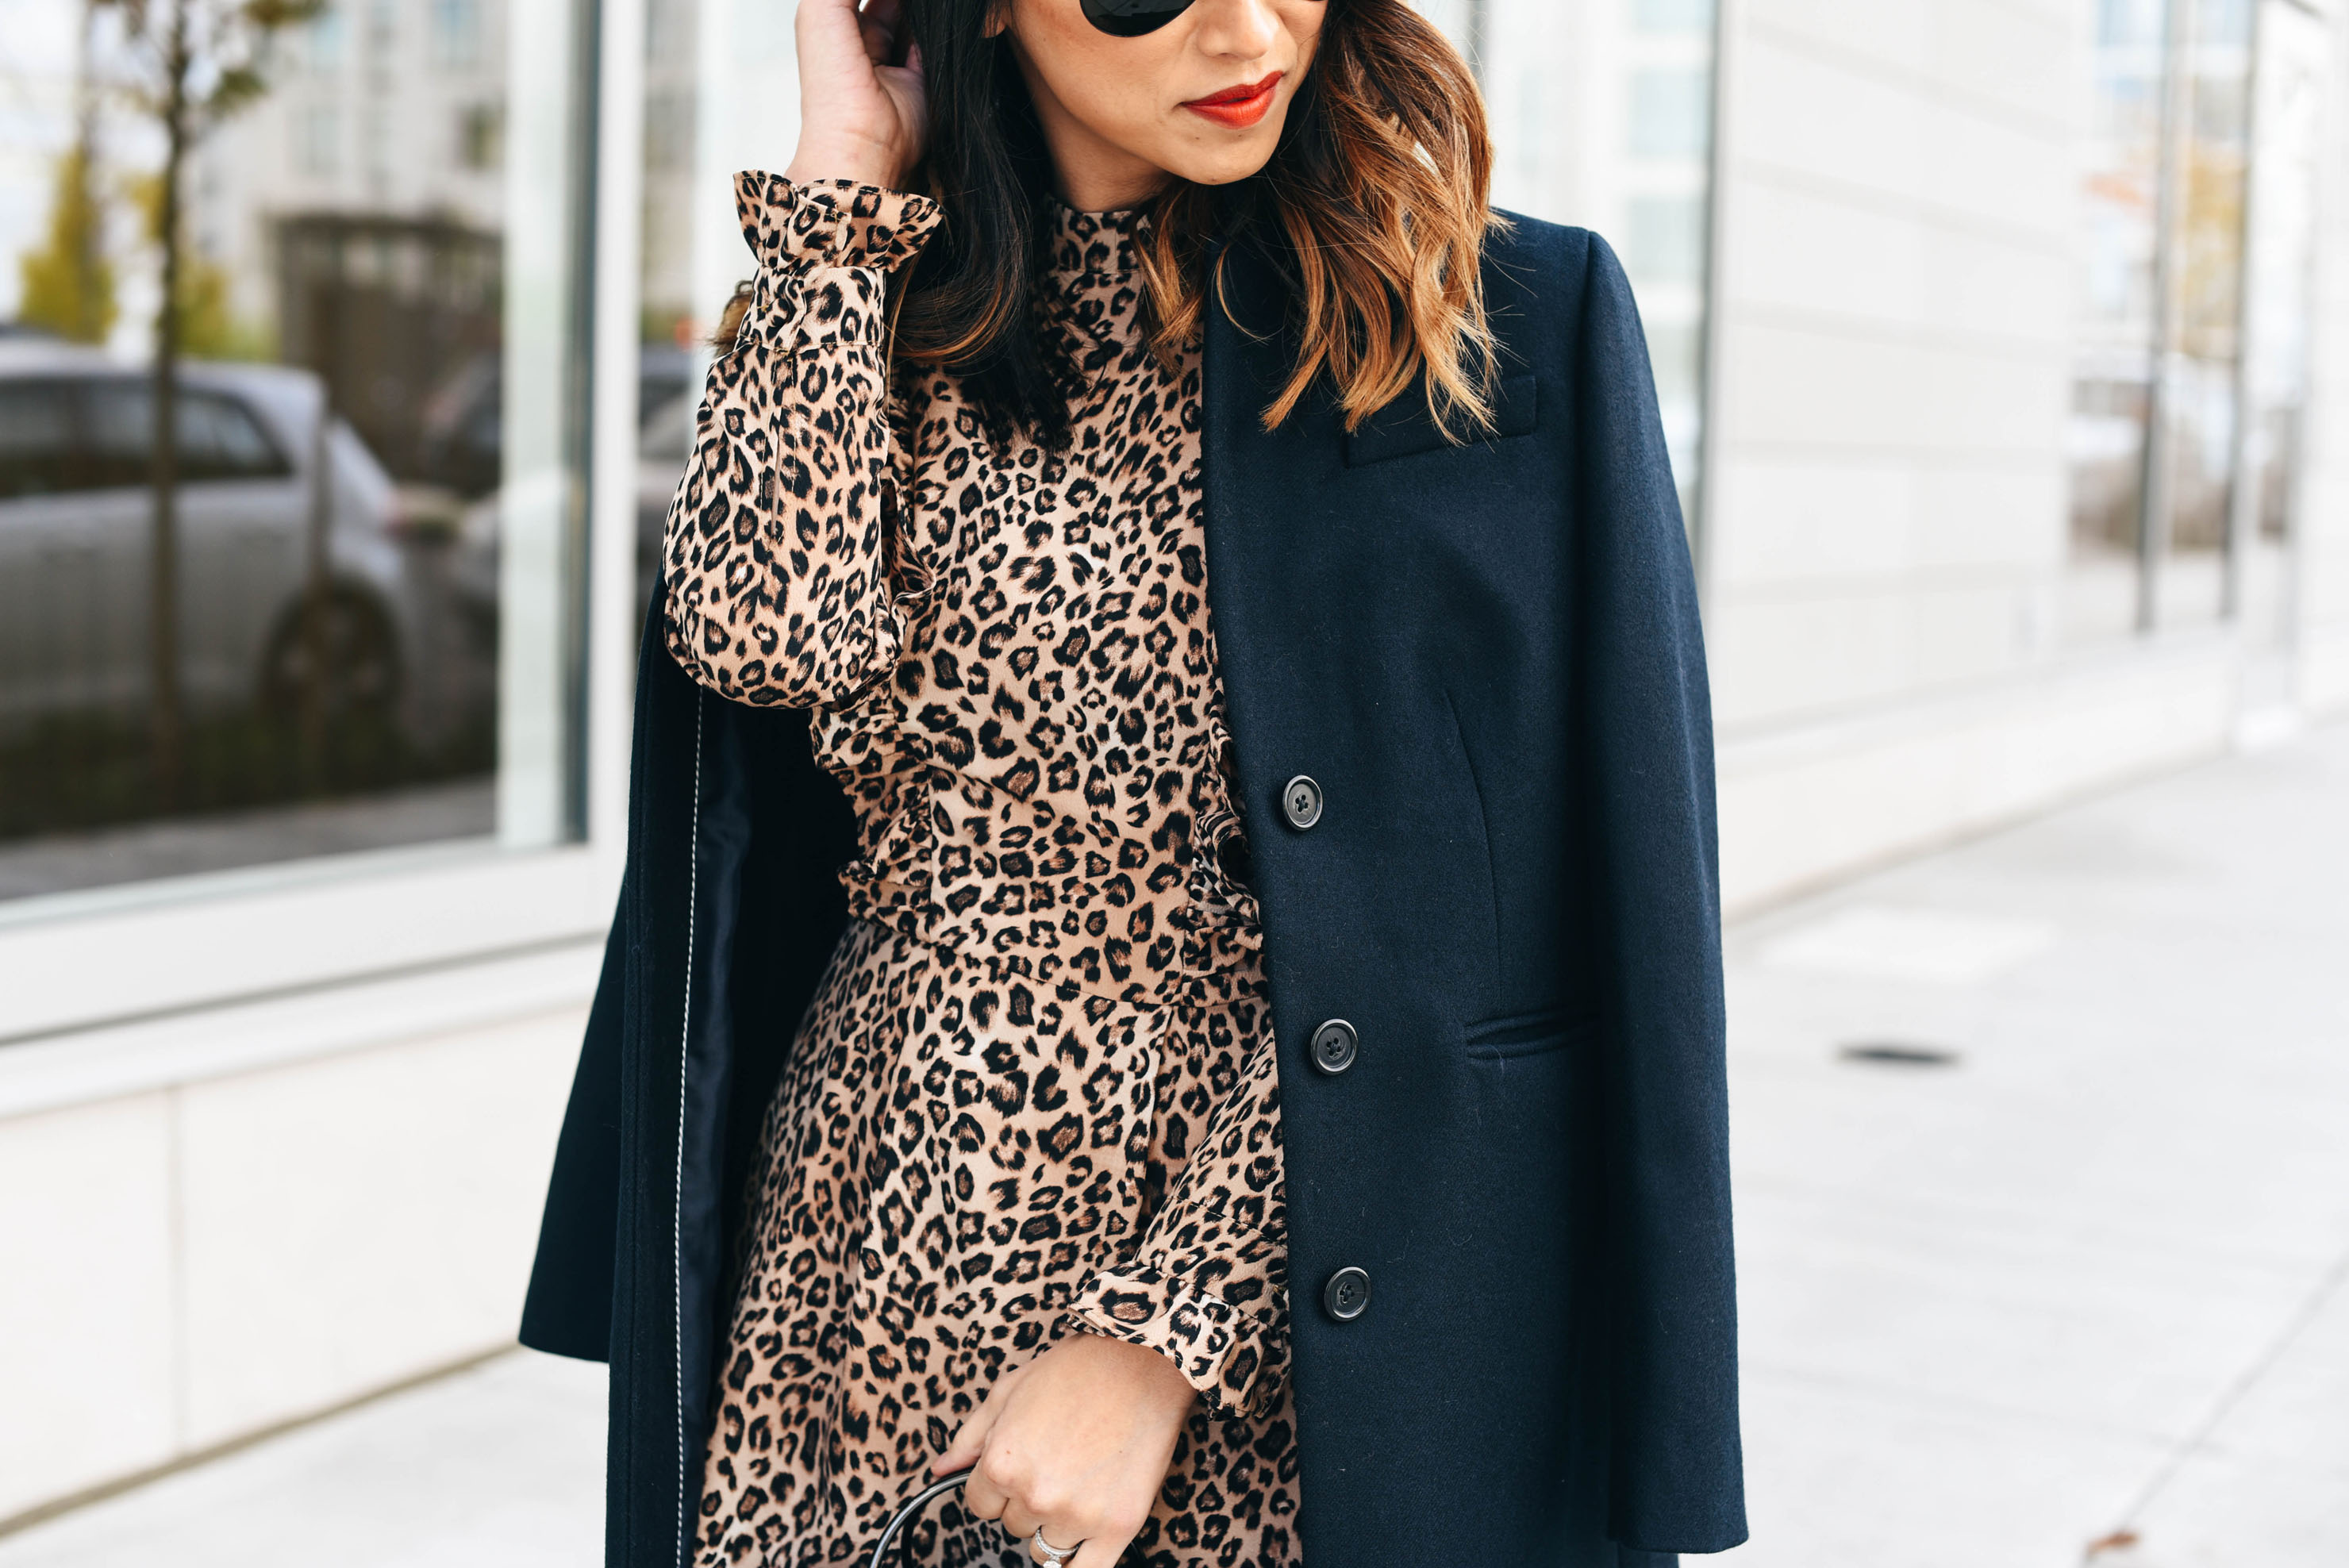 topshop-leopard-dress